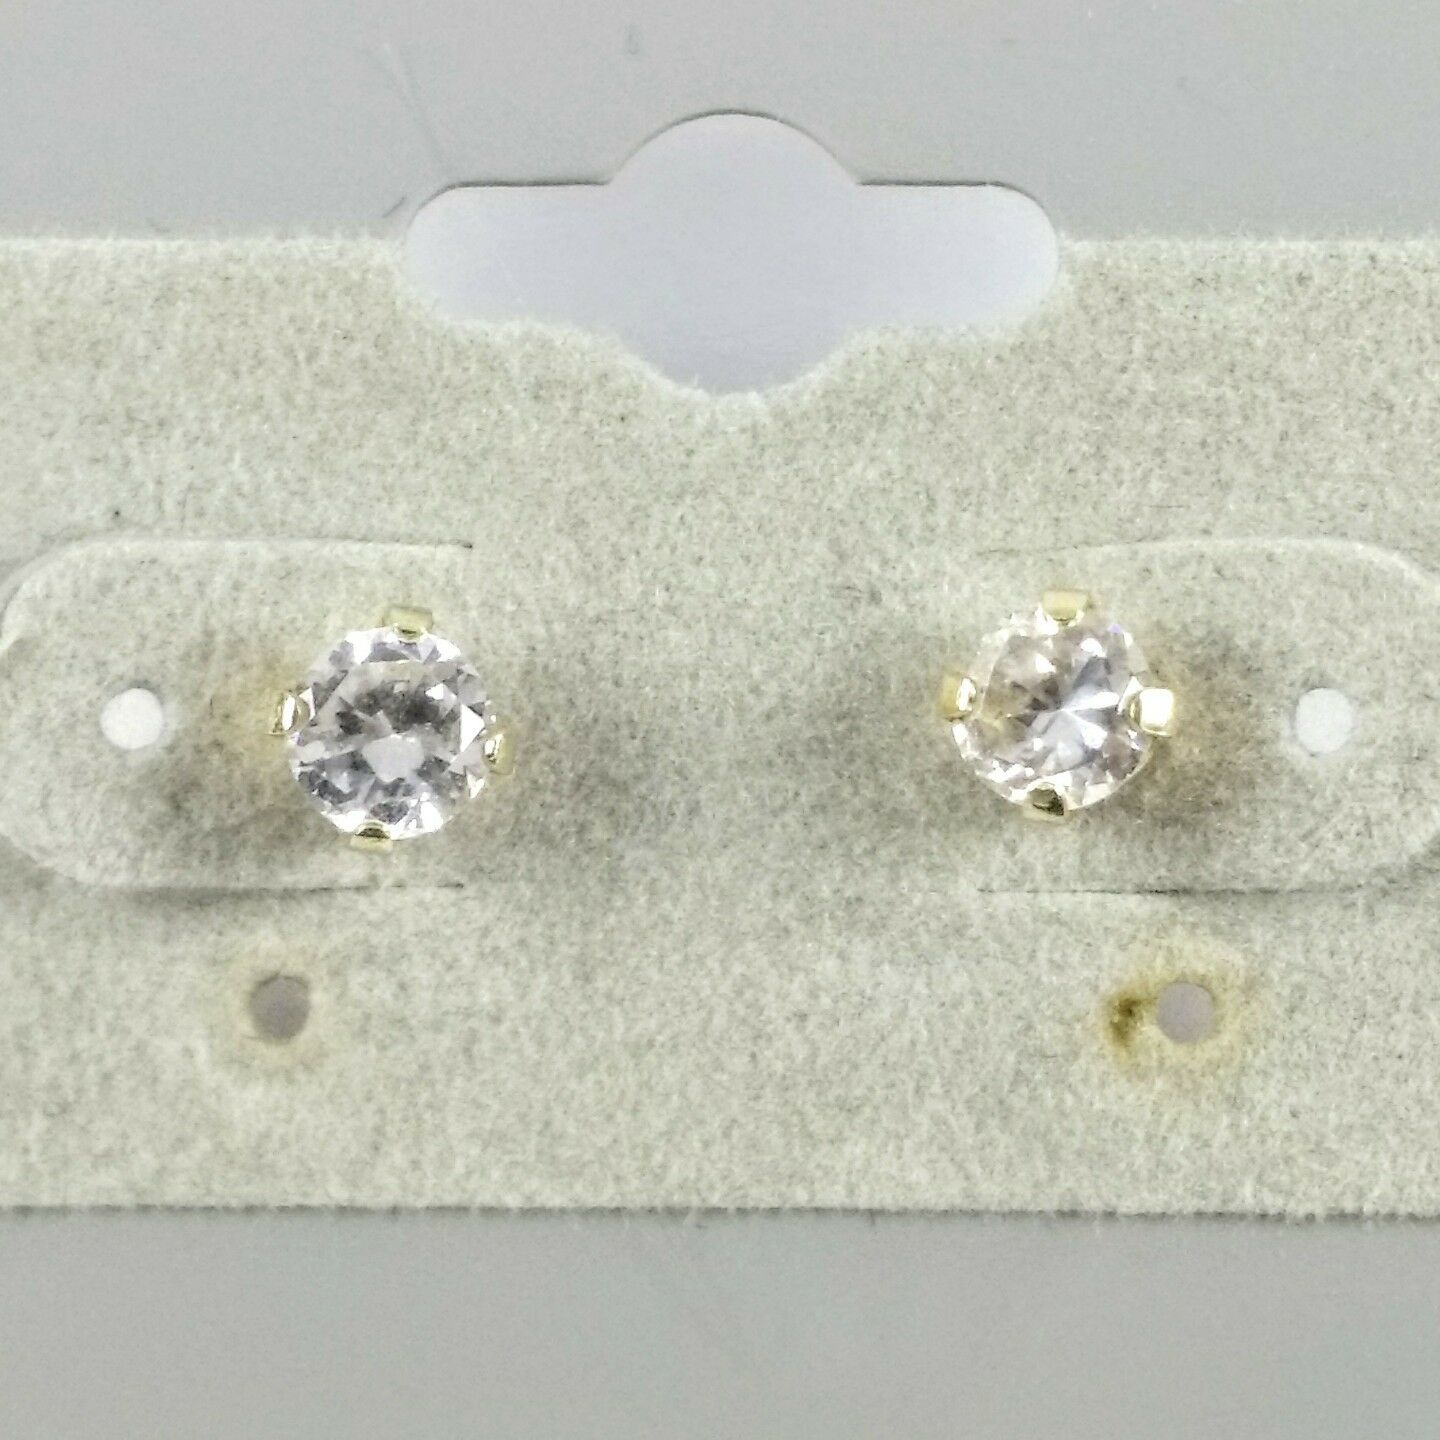 Estate 14K Yellow gold 4mm Sparkling Clear Stone Stud Post Earrings